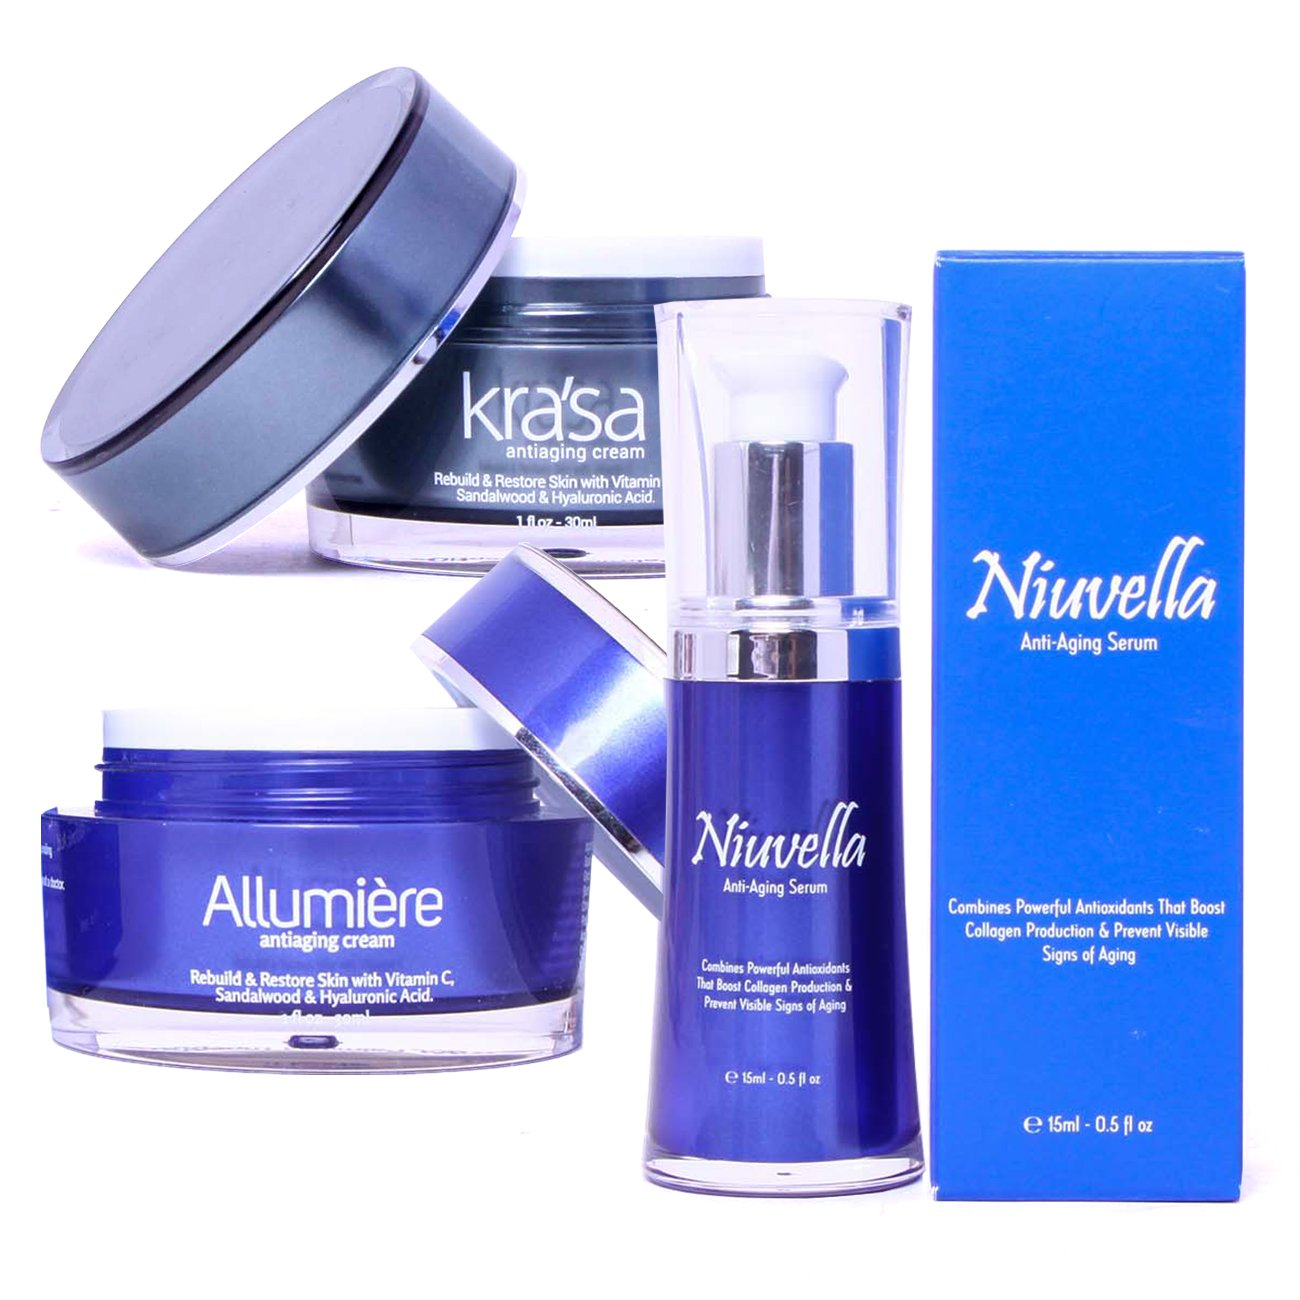 All in One Anti-Aging Treatment with Krasa Anti-Aging Cream - Allumiere Anti-Aging Cream - Niuvella Anti-Aging Serum